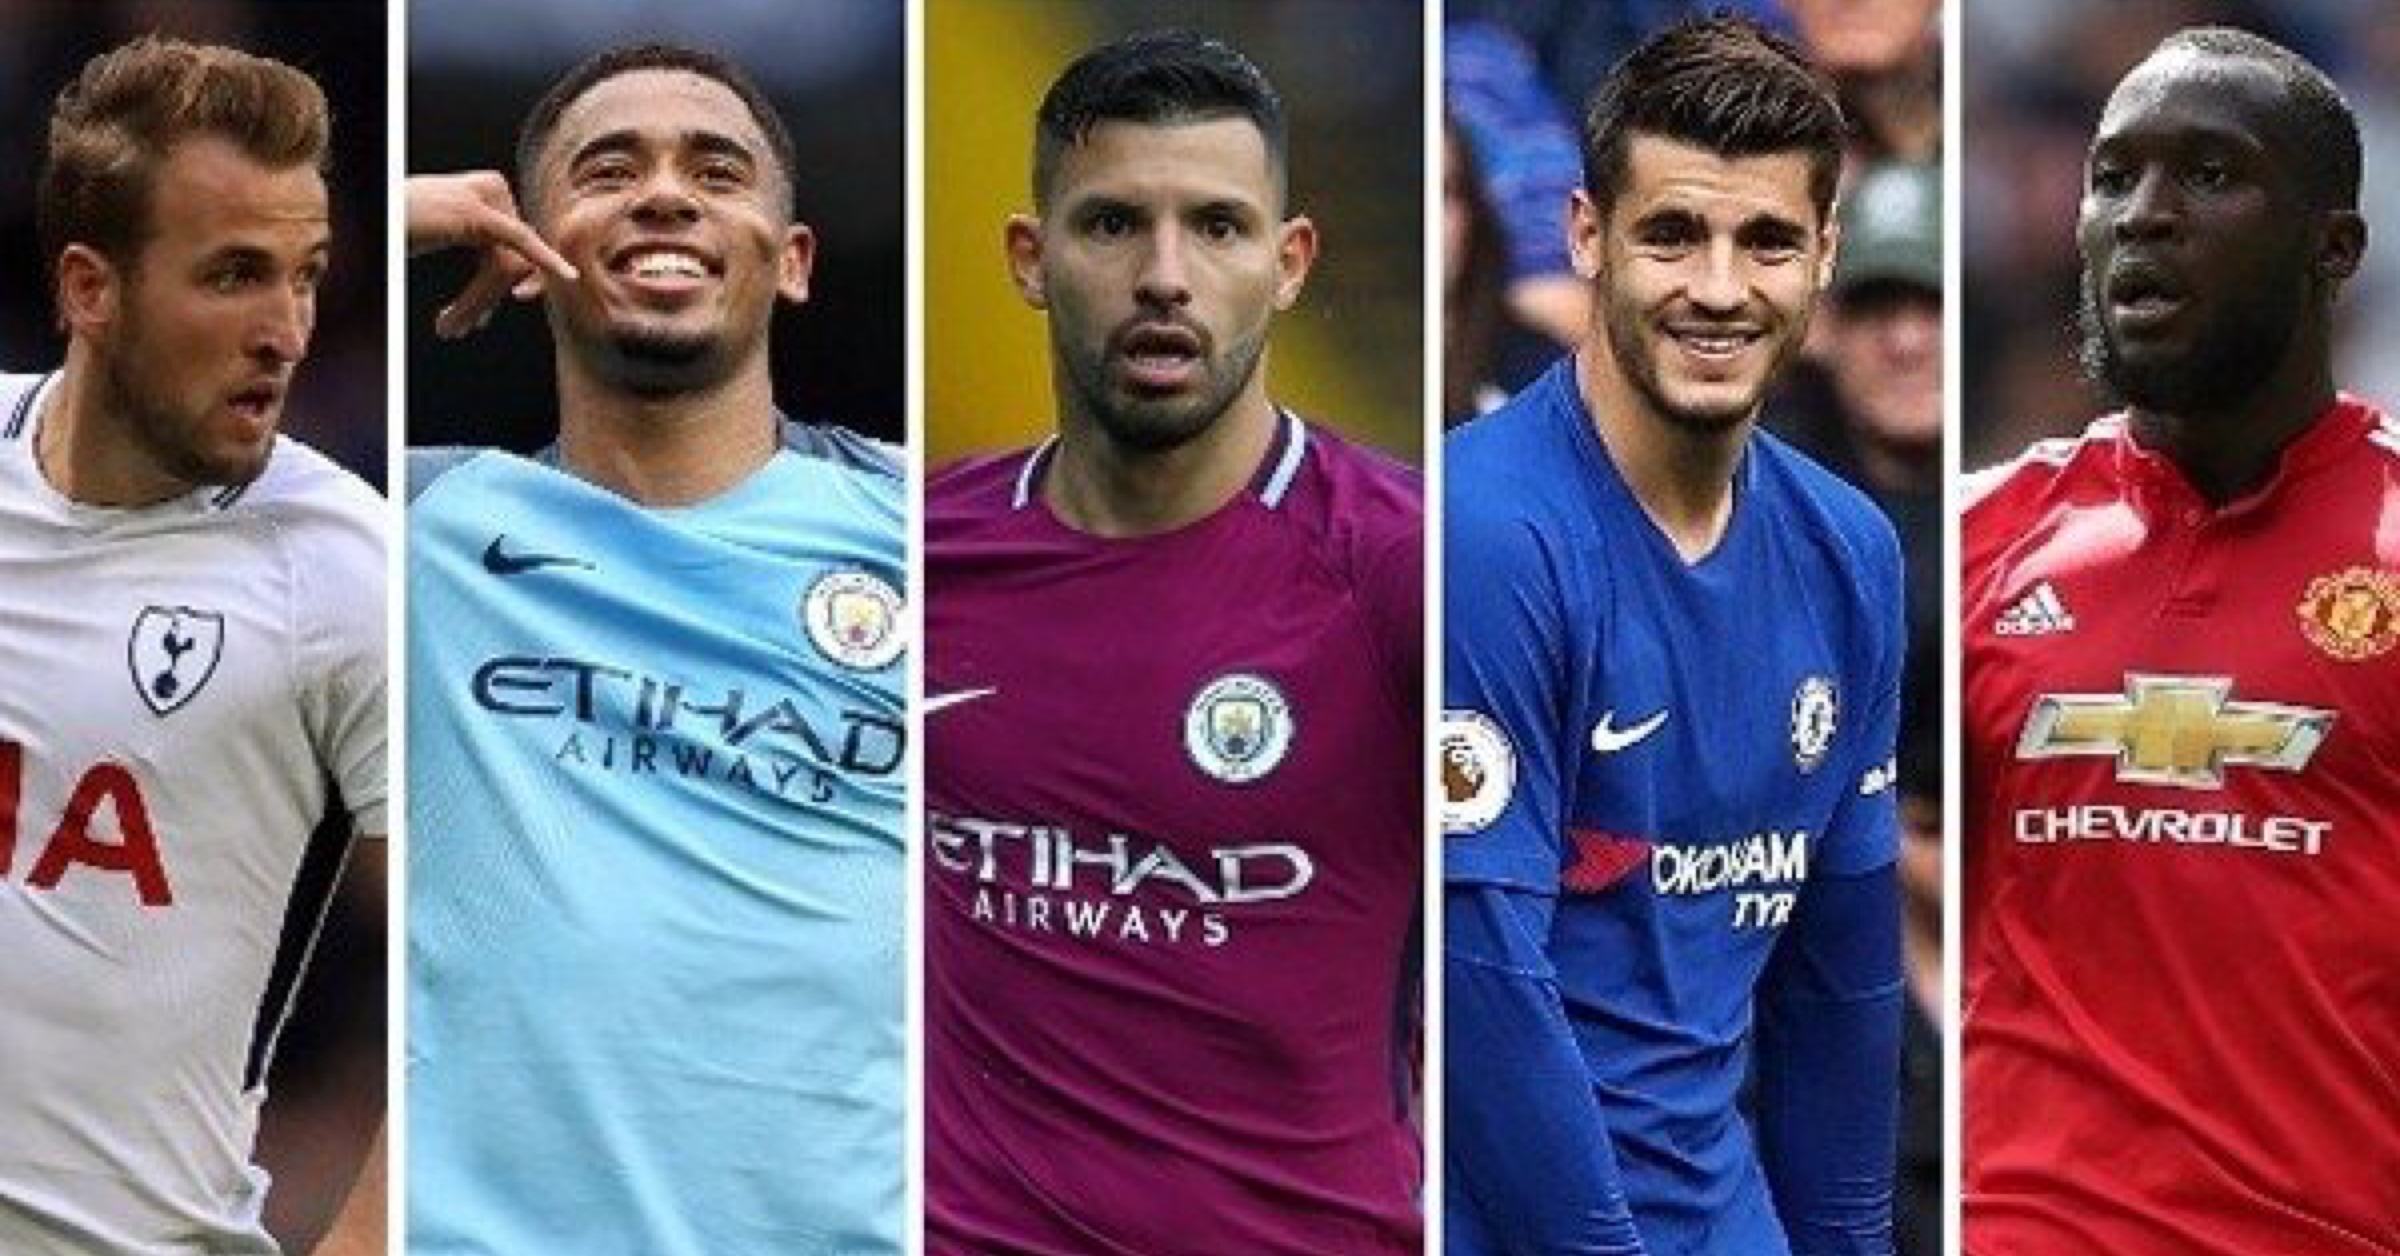 The week in Fantasy Premier League: Picking forwards based on league position and all aboard the Man City bandwagon